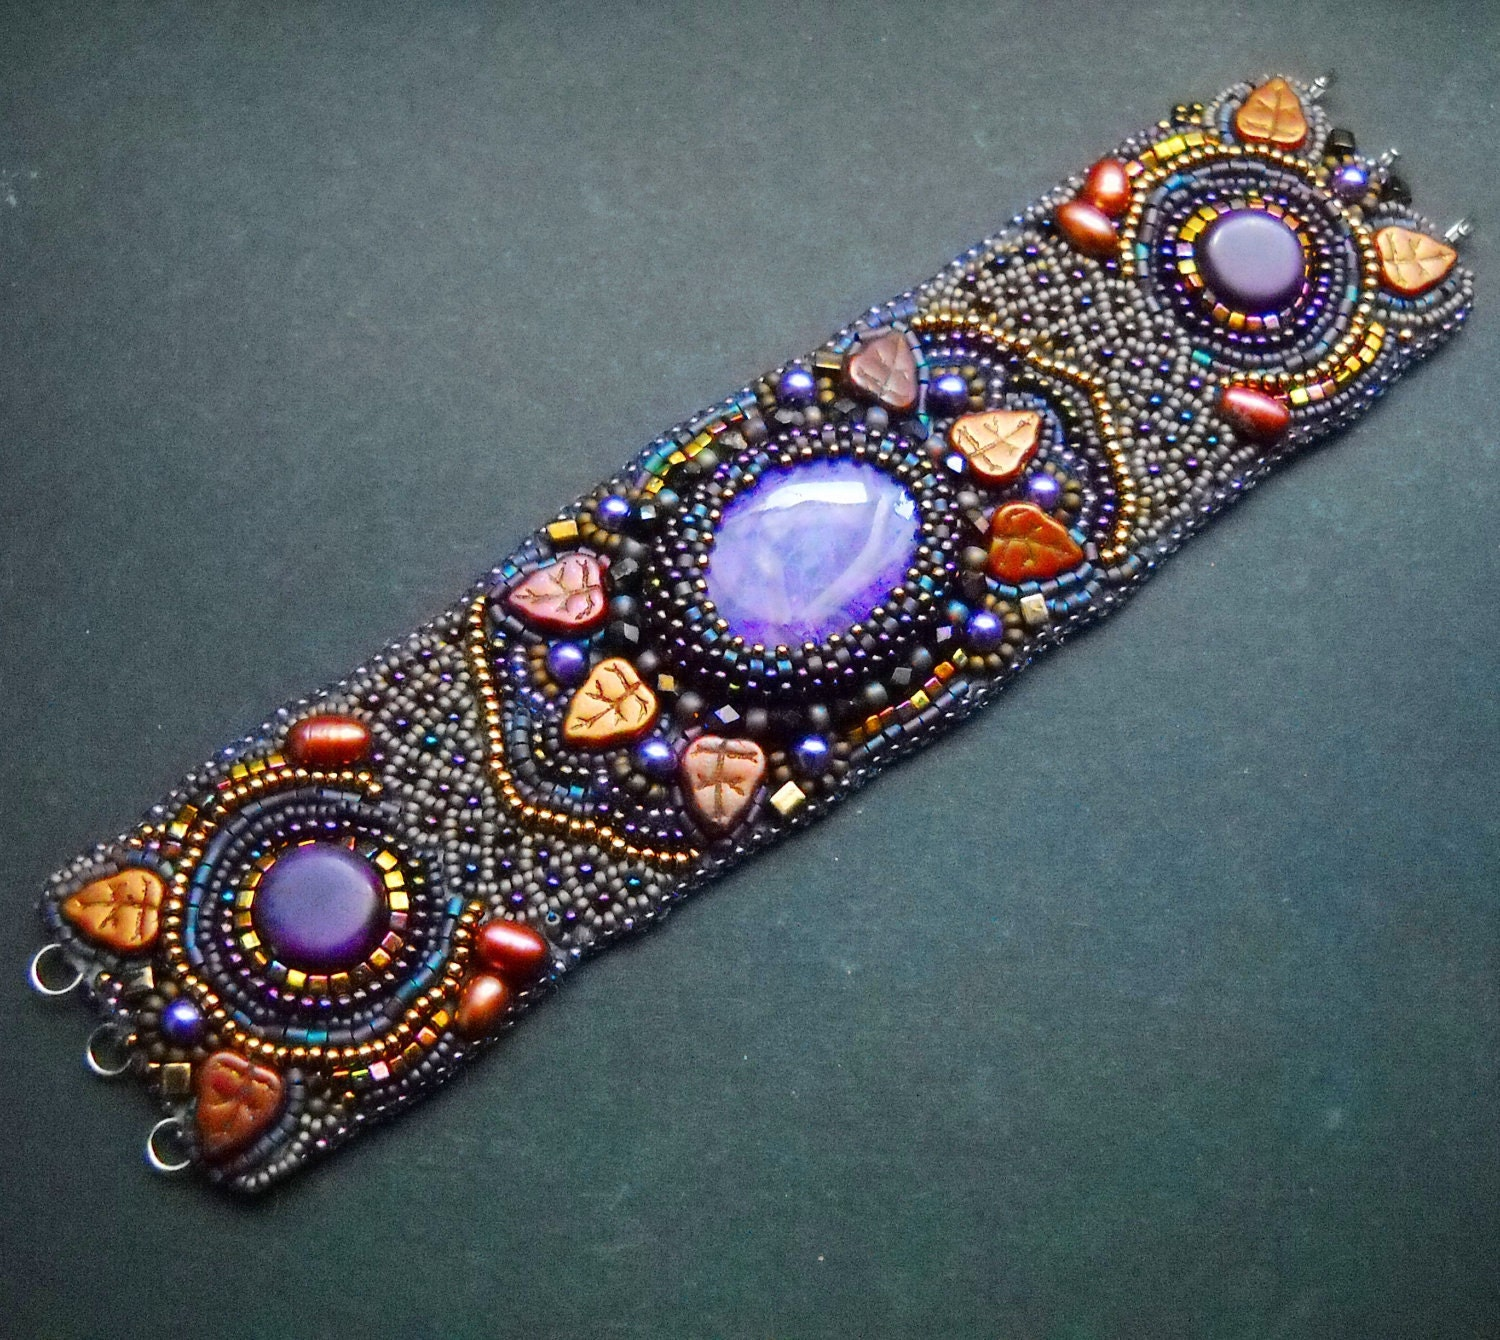 Spicy India Bead Embroidered Bracelet Cuff With Purple. Single Necklace. Fractured Diamond. Golden Stud Earrings. Morganite Earrings. Whimsical Wedding Rings. Ceramic Pendant Necklace. Solar Power Watches. Unusual Rings